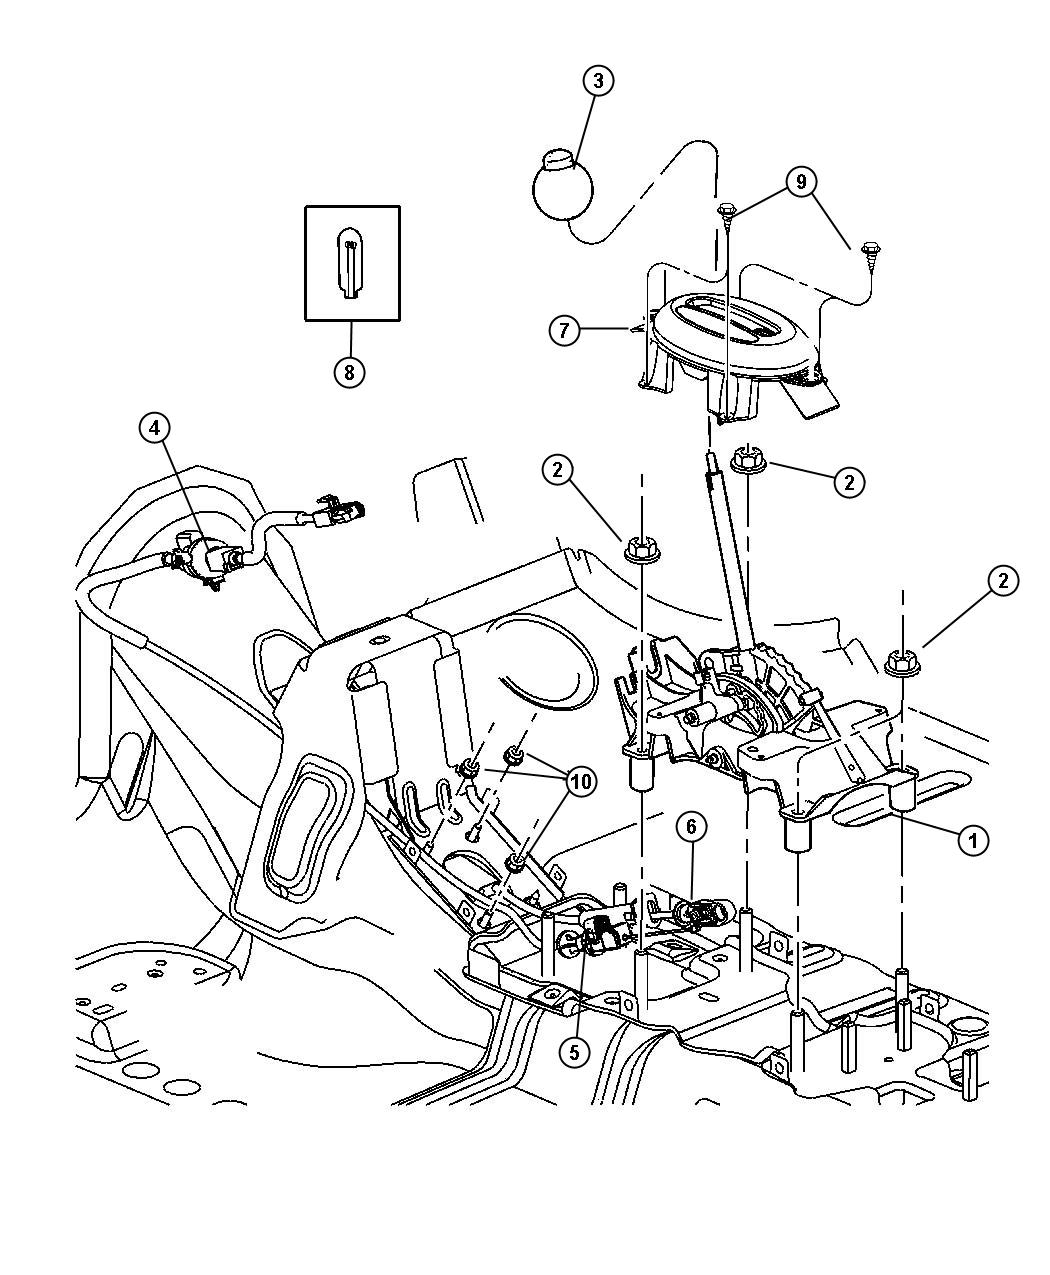 Dodge neon master cylinder diagram on infiniti i30 transmission problems